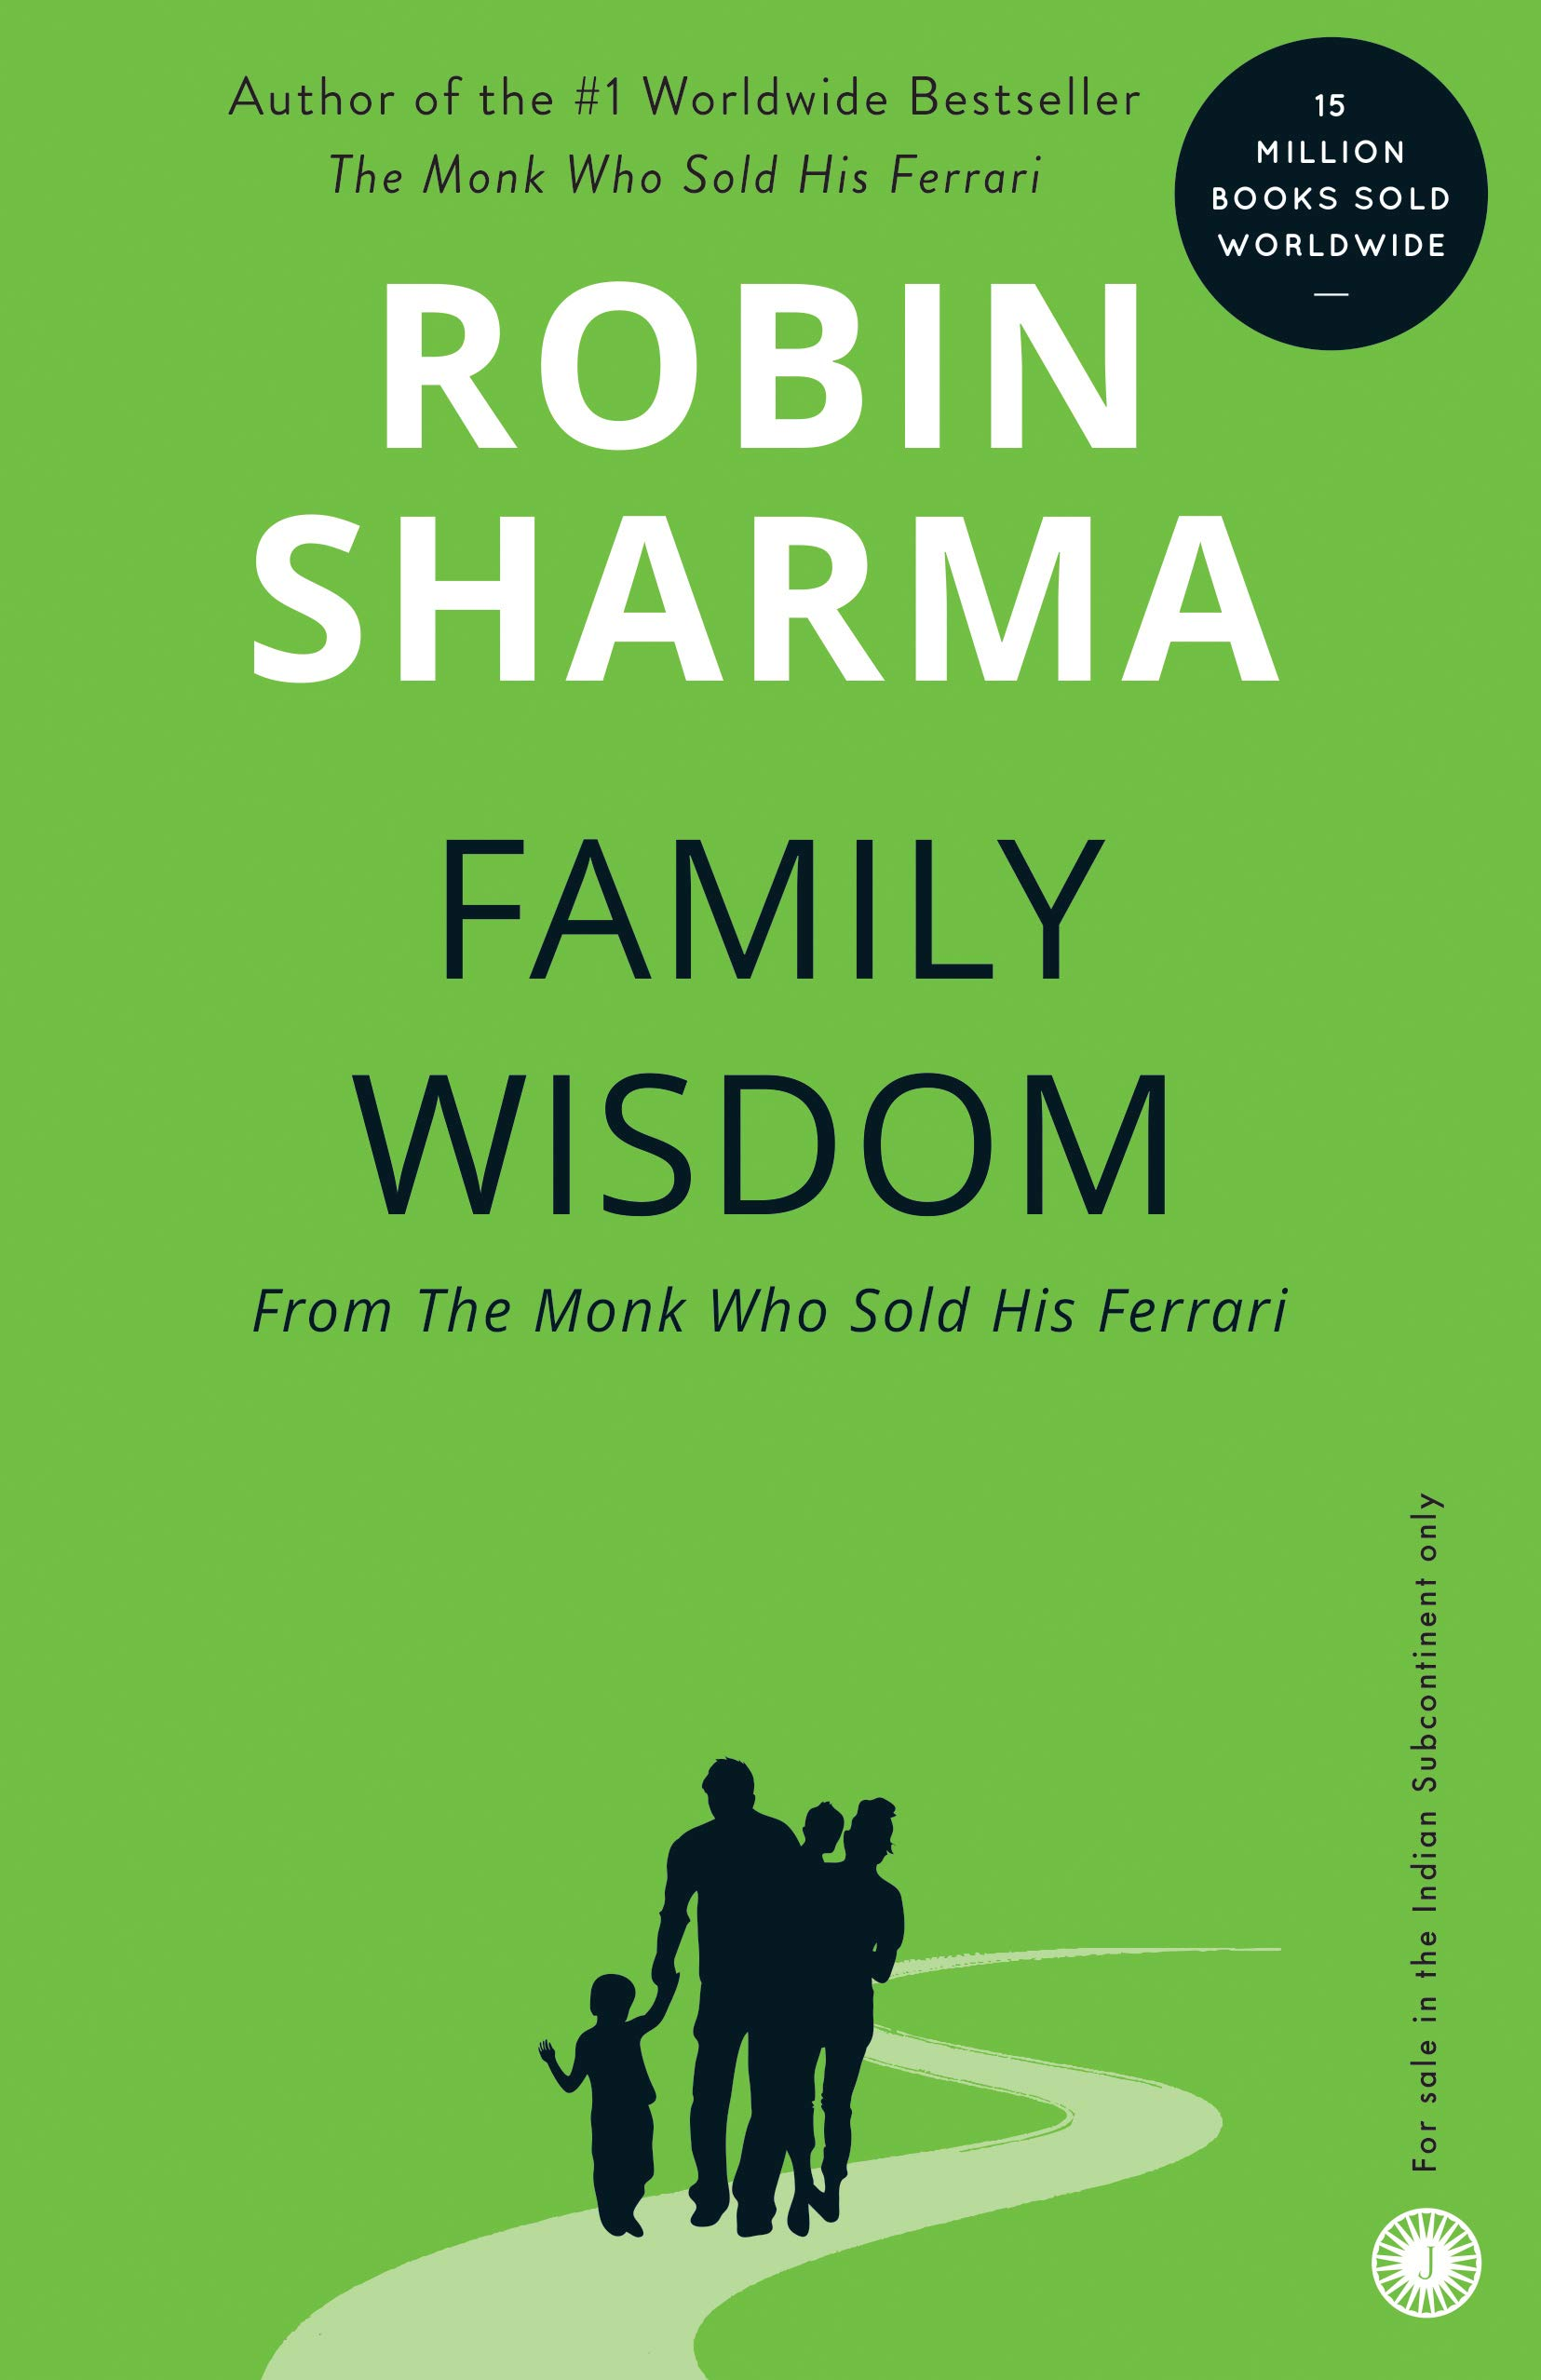 FAMILY WISDOM (FROM THE MONK WHO SOLD HIS FERRARI)